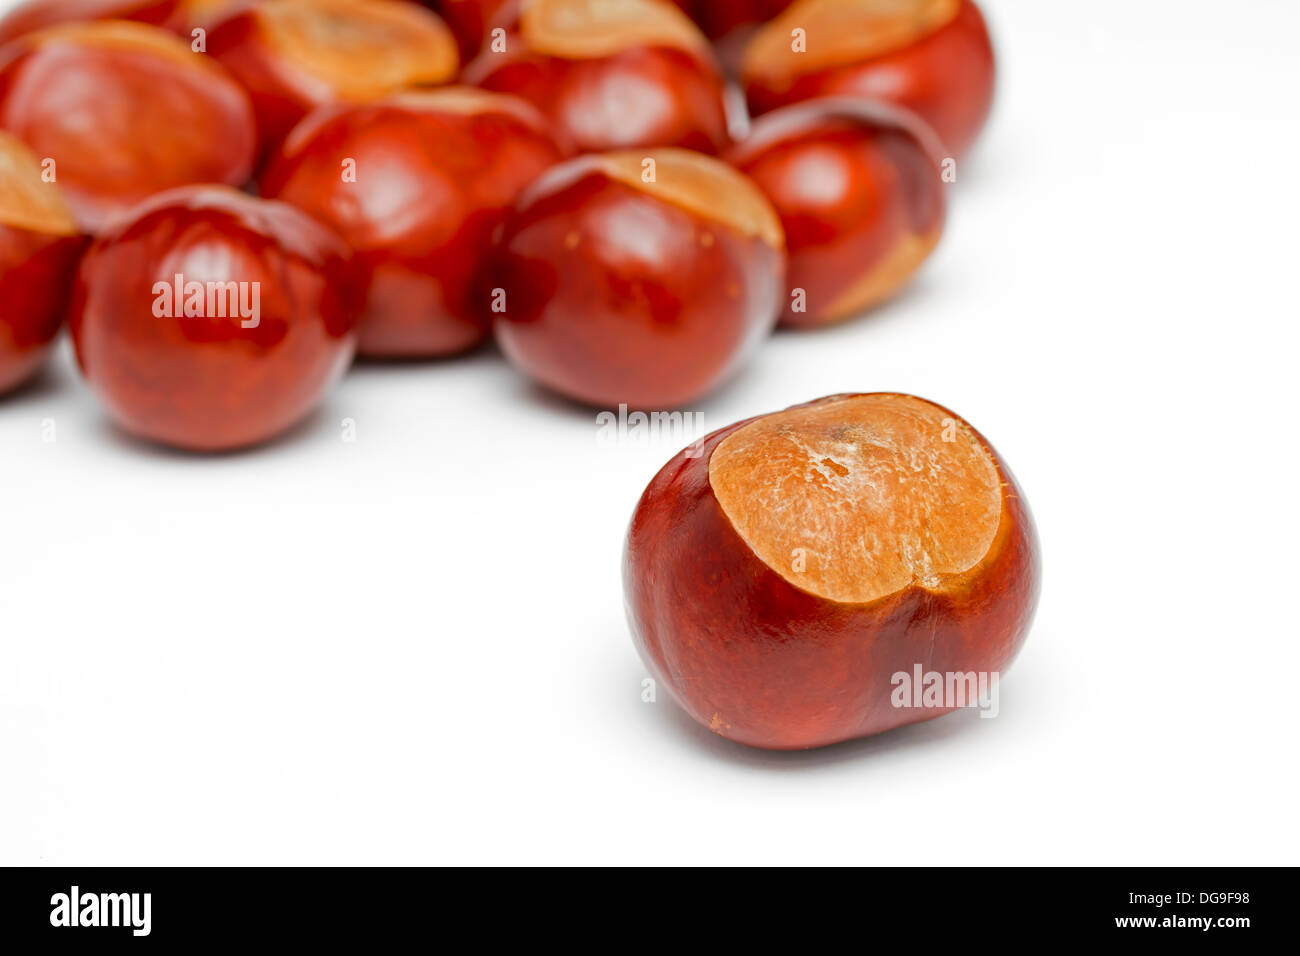 Conkers on a white background - Stock Image